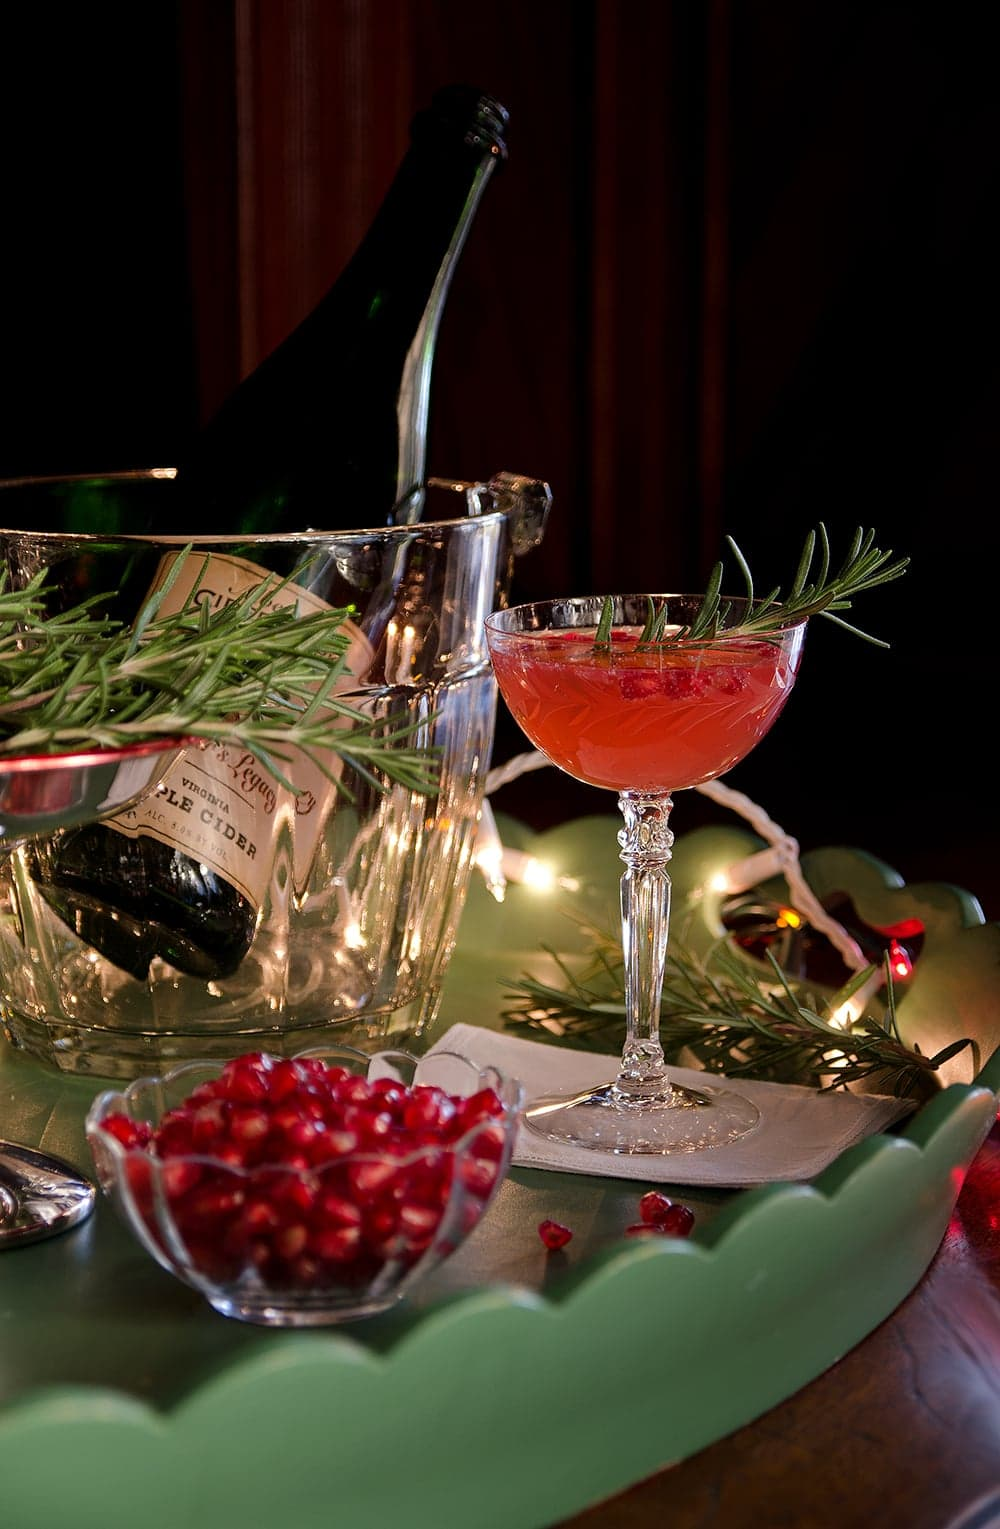 Saucy Santa Cider Cocktail tastes like Christmas! Bubbly hard cider, fresh pomegranate seeds and springs of rosemary come together to make a festive holiday drink. Let's toast to the season!   vintagekitty.com